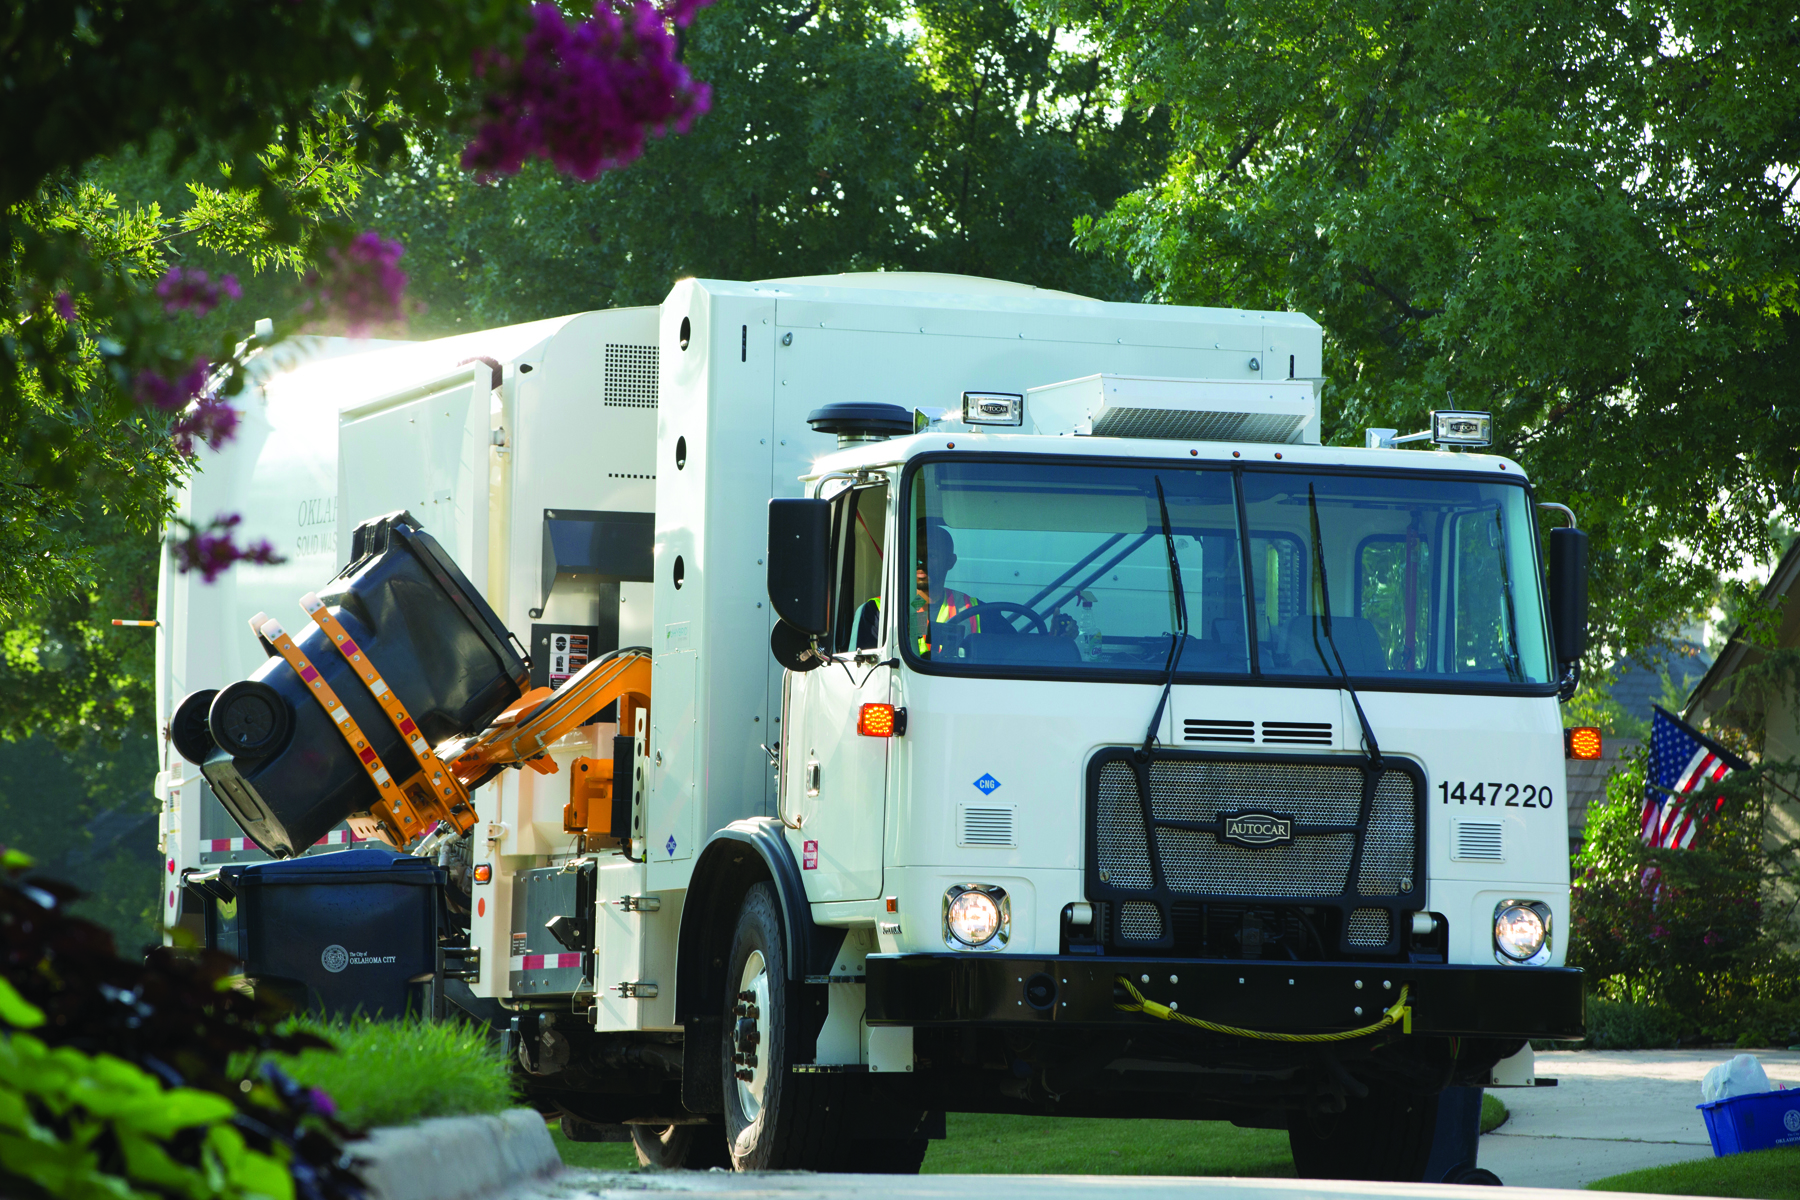 oklahoma city ok waste management contractor aw waste america s family owned waste company. Black Bedroom Furniture Sets. Home Design Ideas